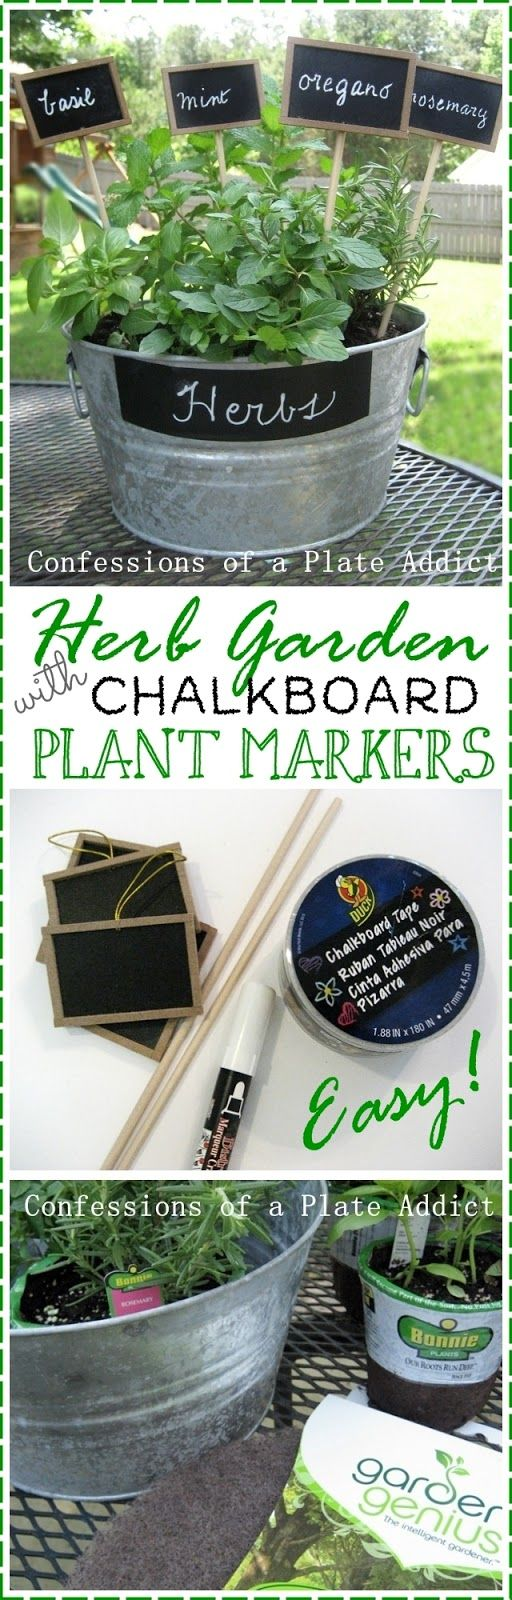 English garden plant labels - Diy Mini Herb Garden With Chalkboard Plant Markers